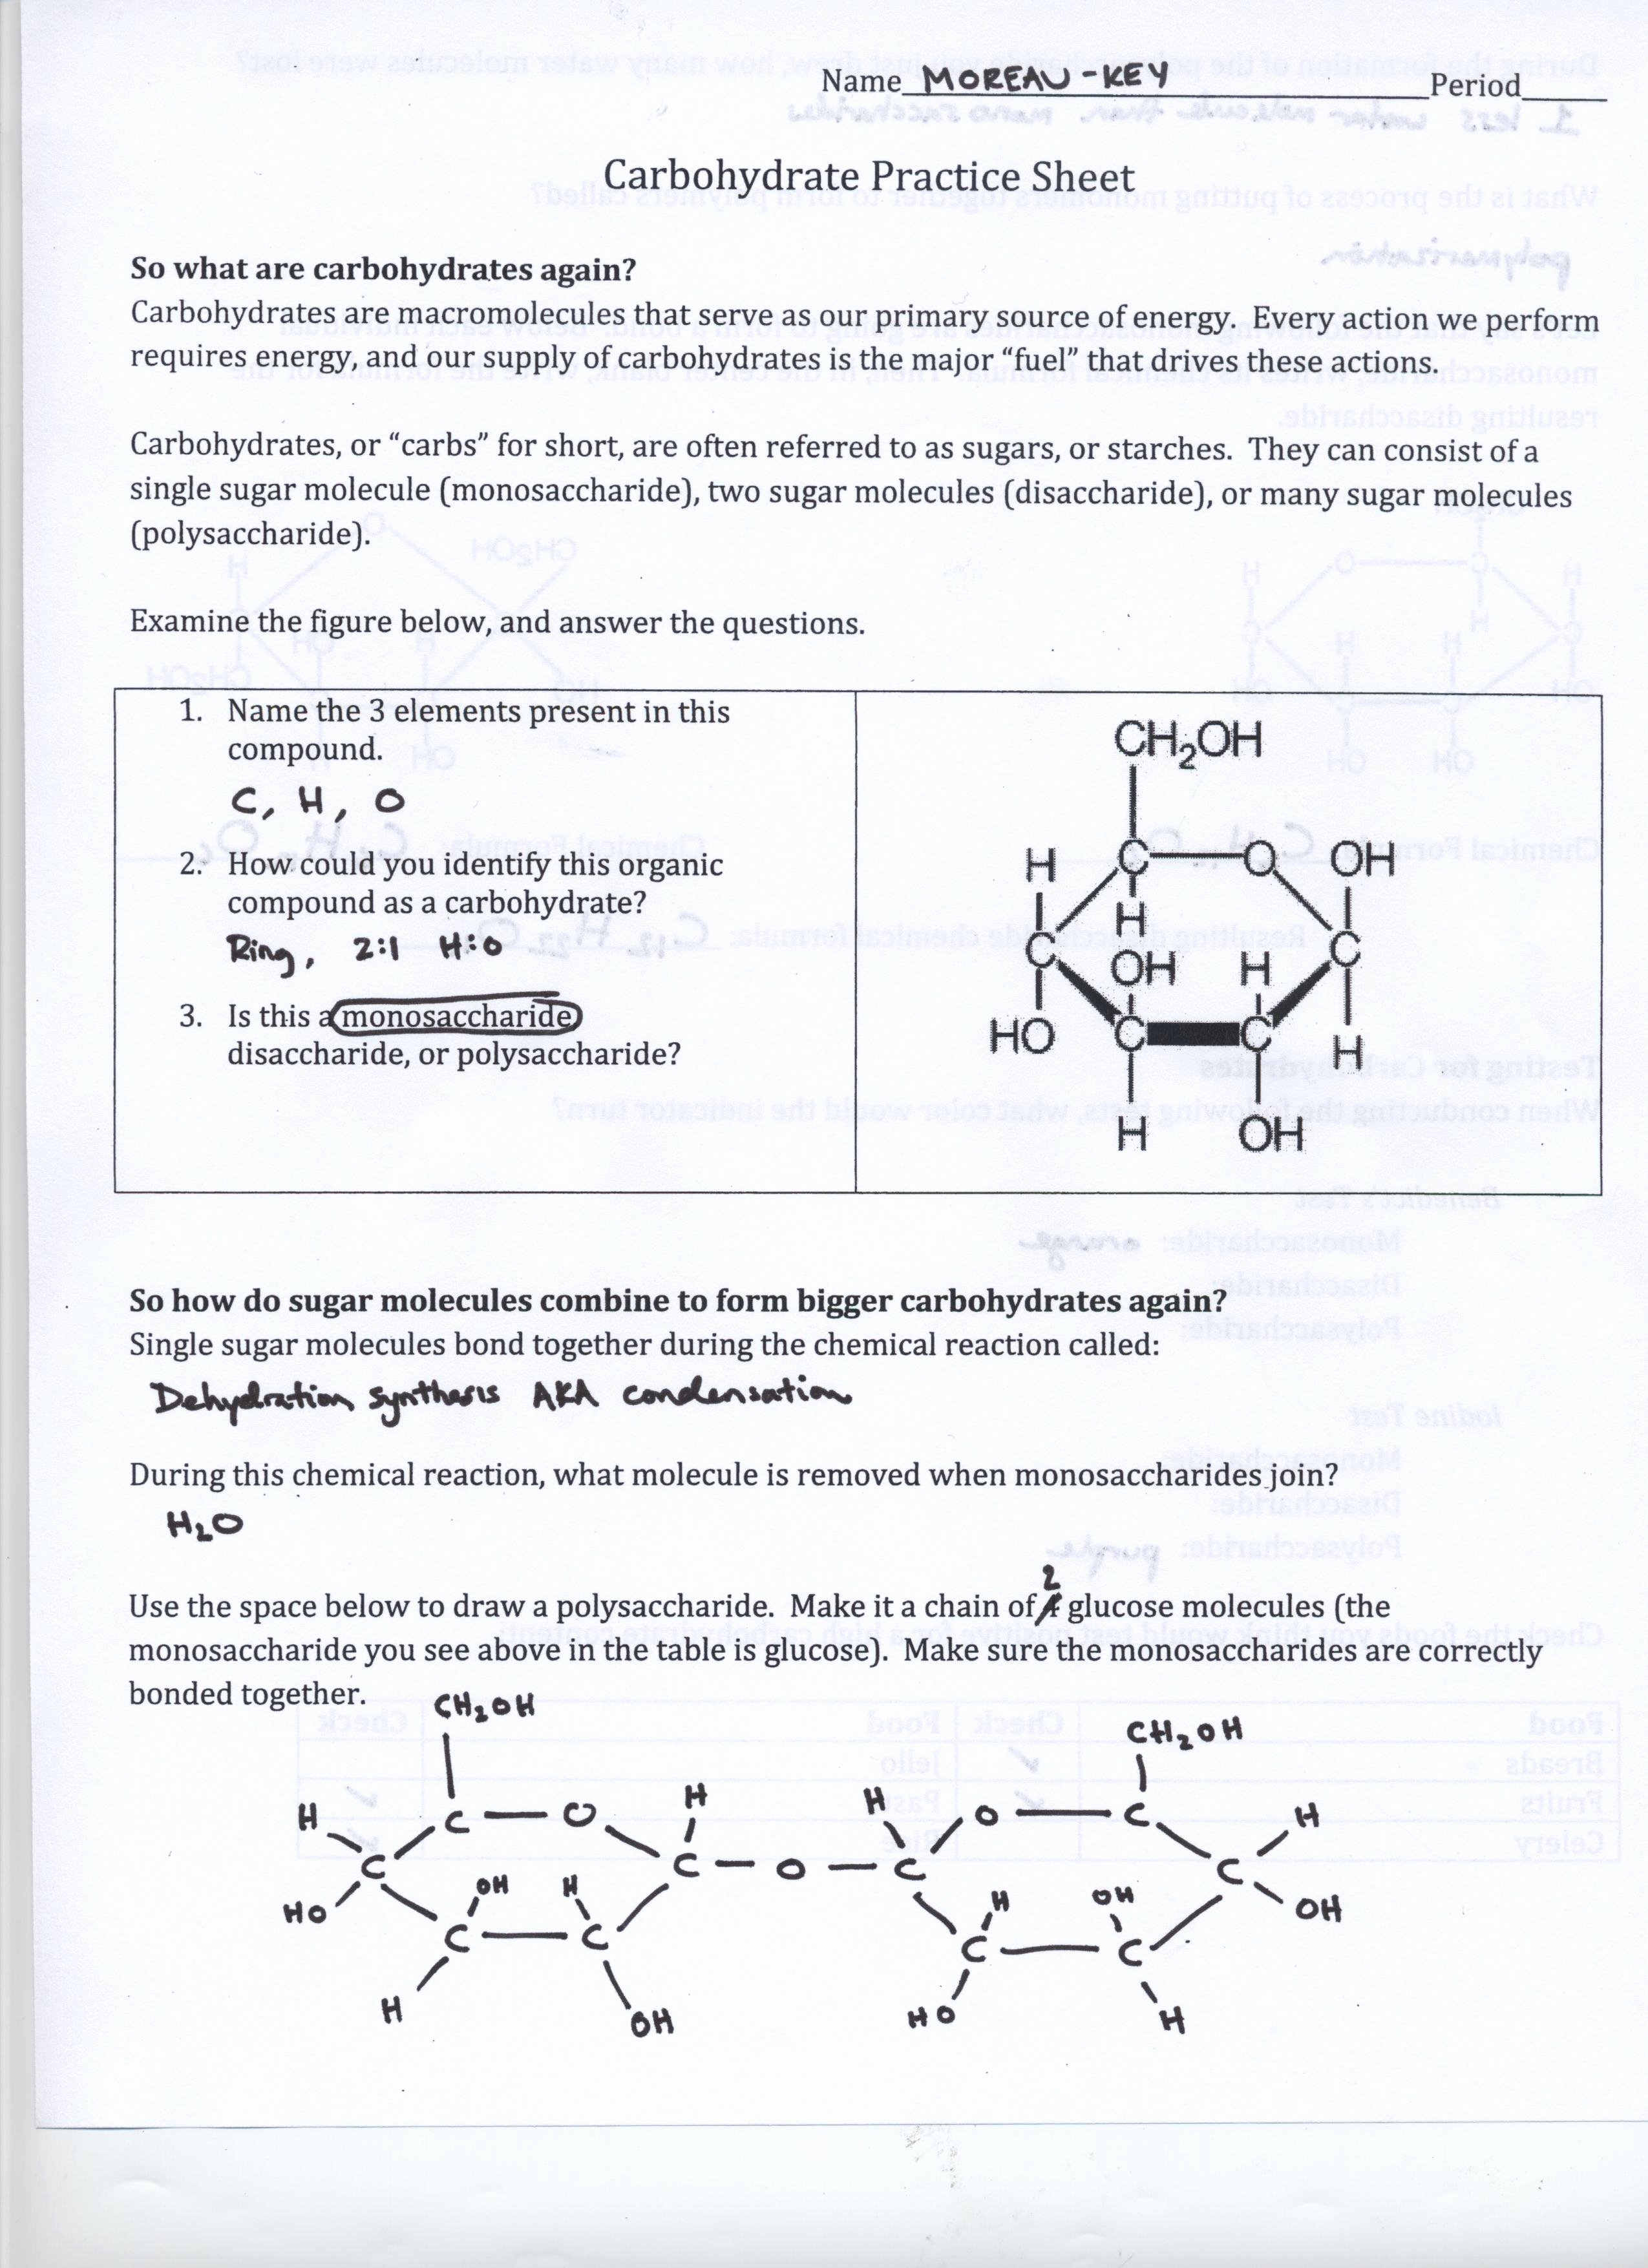 Biological Molecules Worksheet Answers Best Of 138 Class Materials Mr Moreau S Website